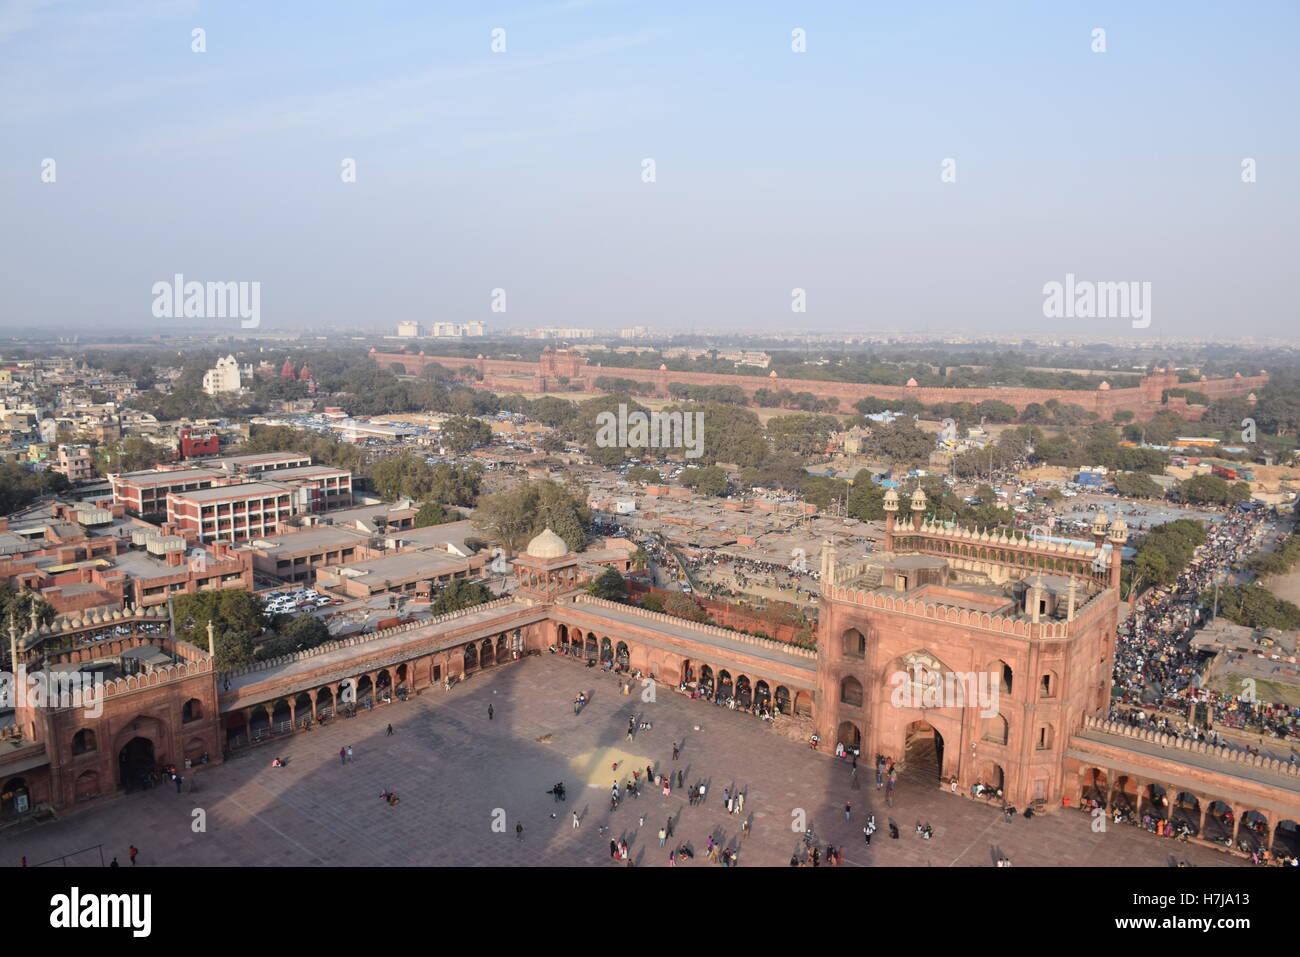 Aerial view of old Delhi and the red fort from a minar of Jama masjid mosque, Delhi (India) Stock Photo